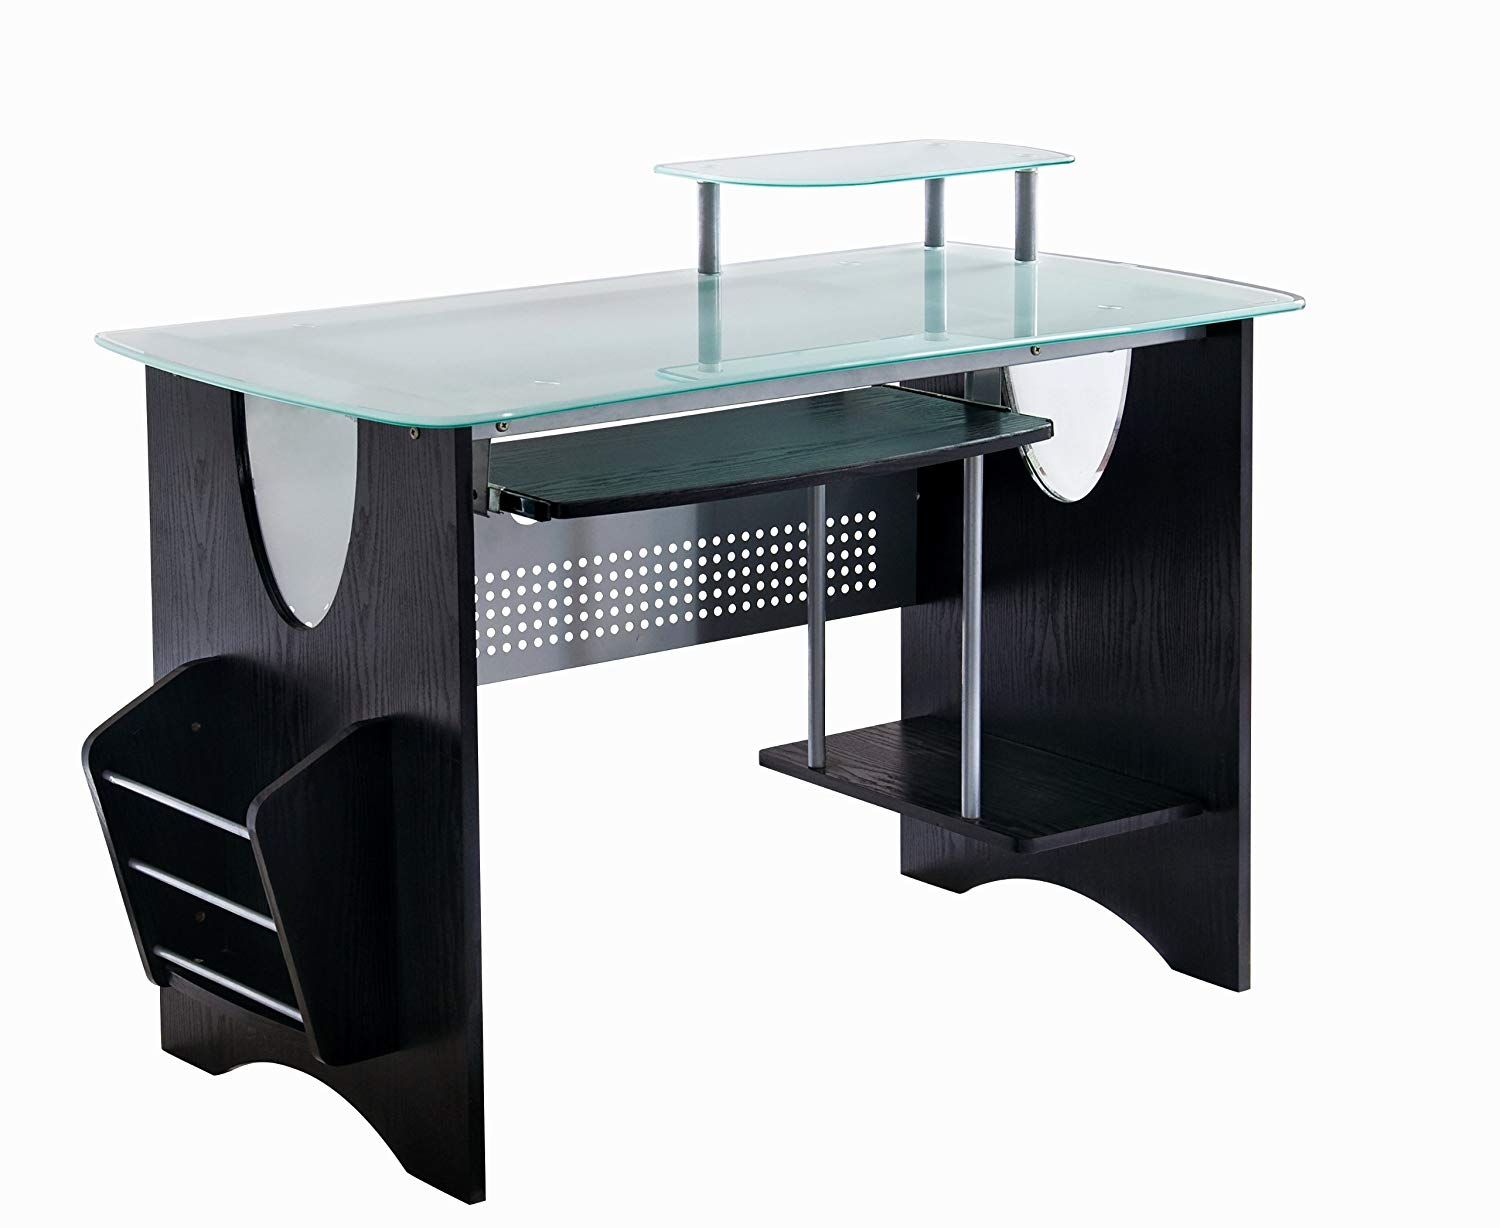 Computer table made of glass amazon.com: techni mobili stylish computer table made of frosted glass with storage space.  WQBPELX